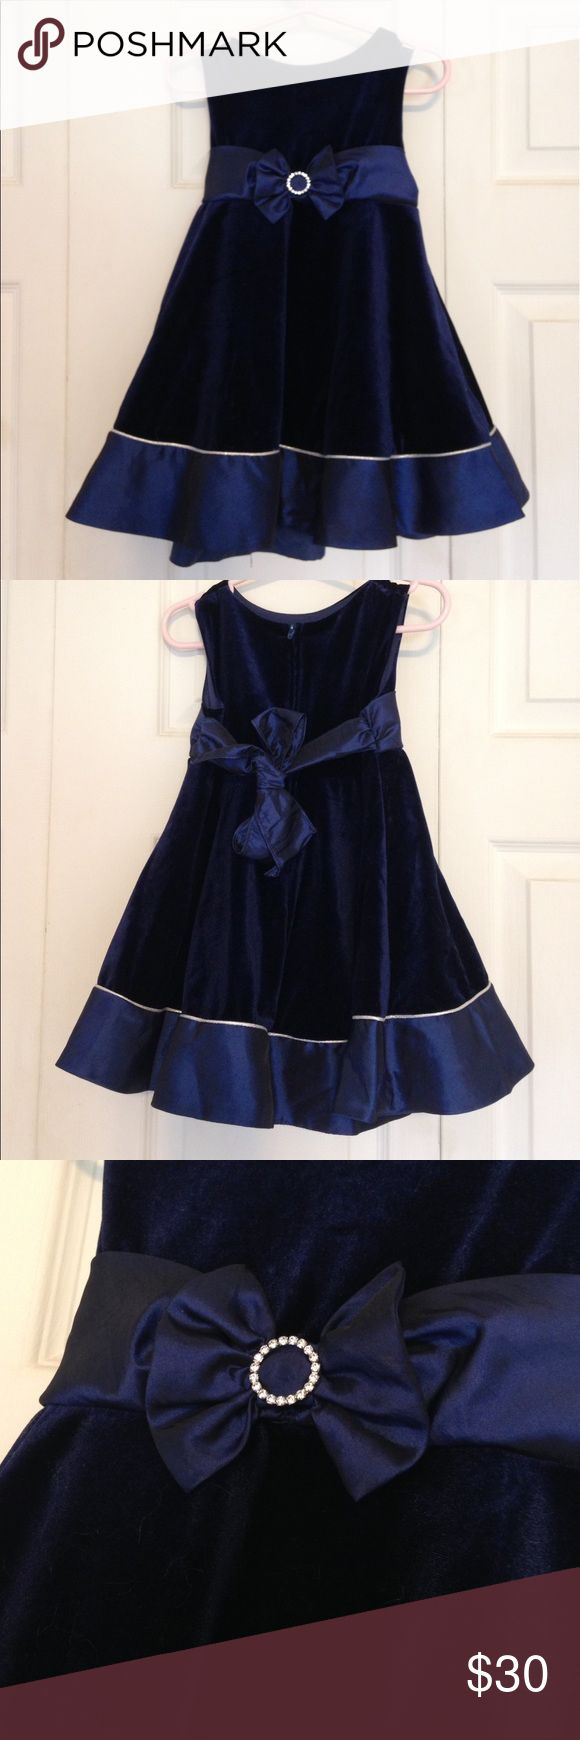 Rare Editions Blue Velvet Party Dress + Shoes Beautiful deep blue navy velvet and taffeta formal dress with silver crystal accent and bow tie back. Includes diaper cover and BONUS Cherokee formal shoes (toddler size 7). Dress and shoes worn once, inside only. Rare Editions Dresses Formal